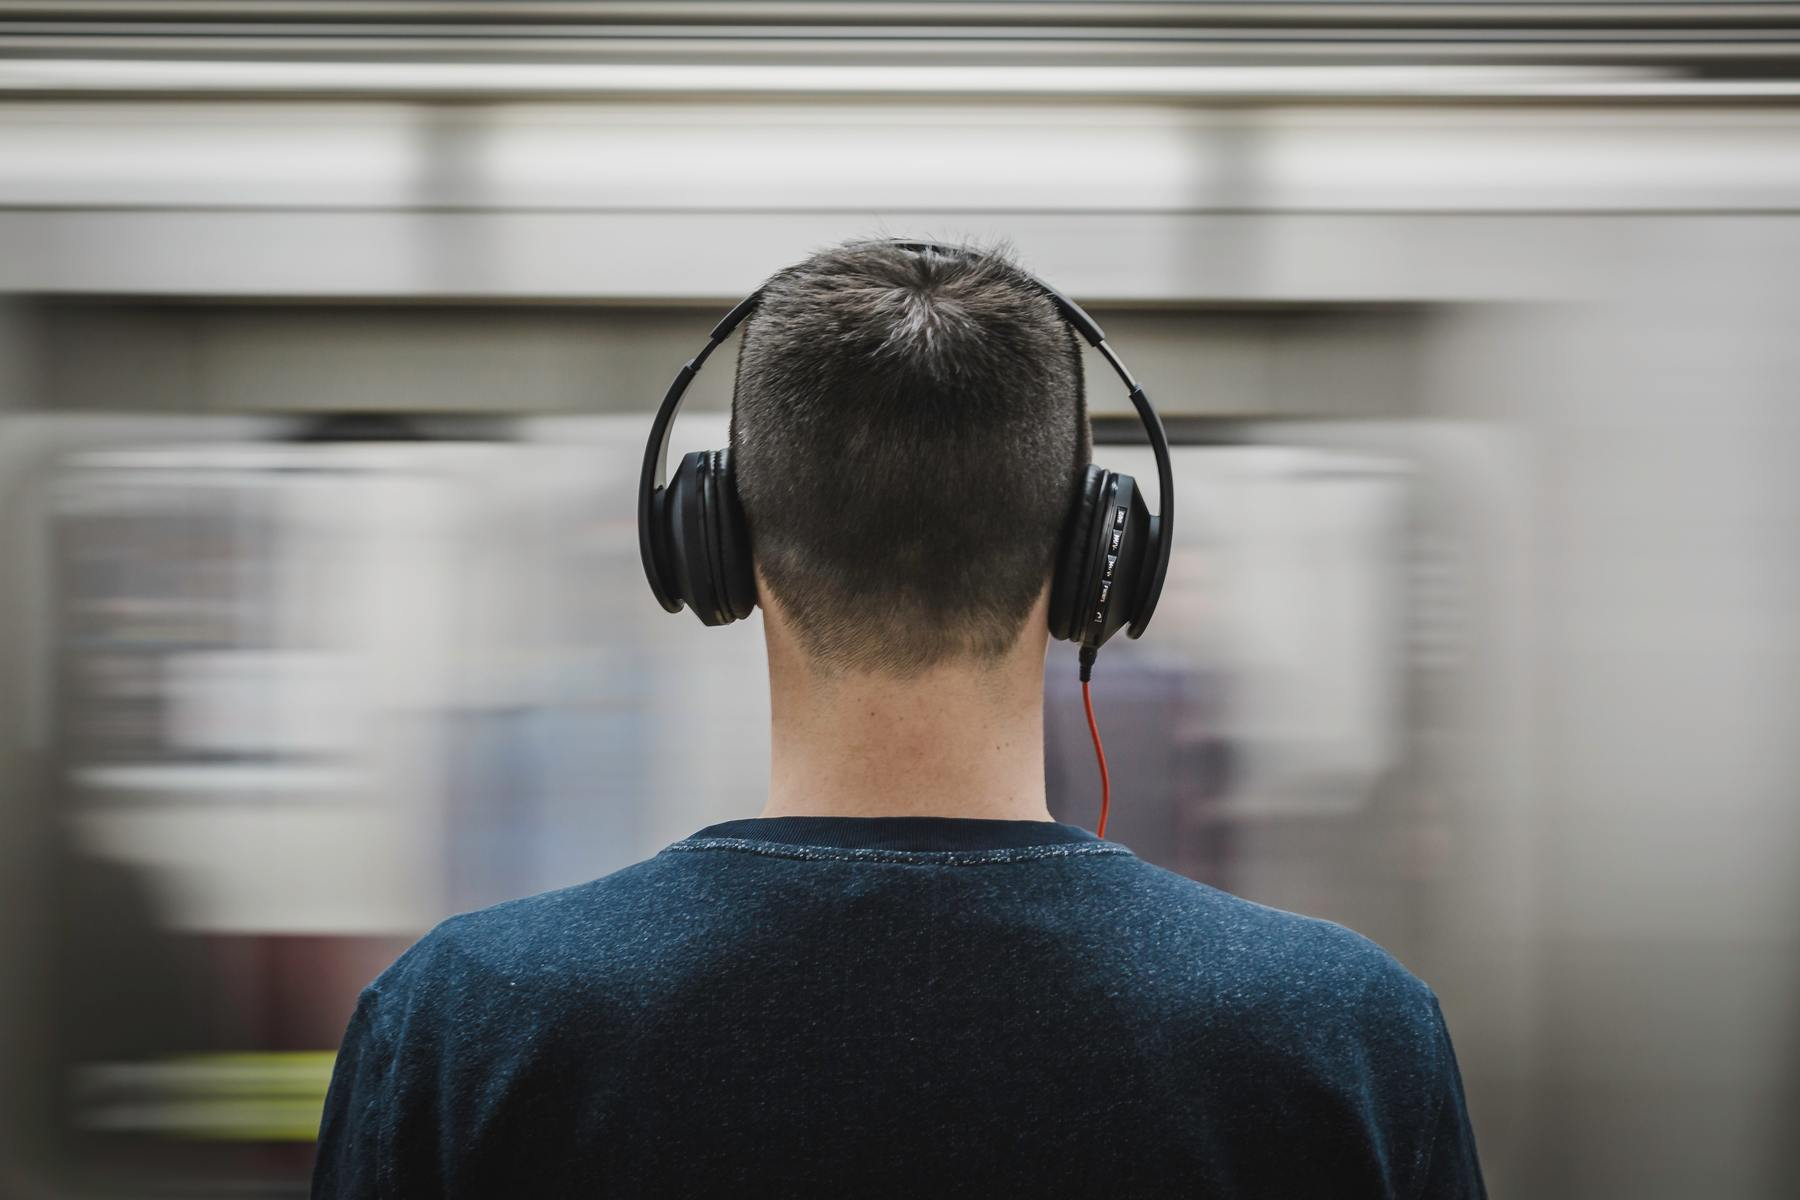 Man with headphones from the back